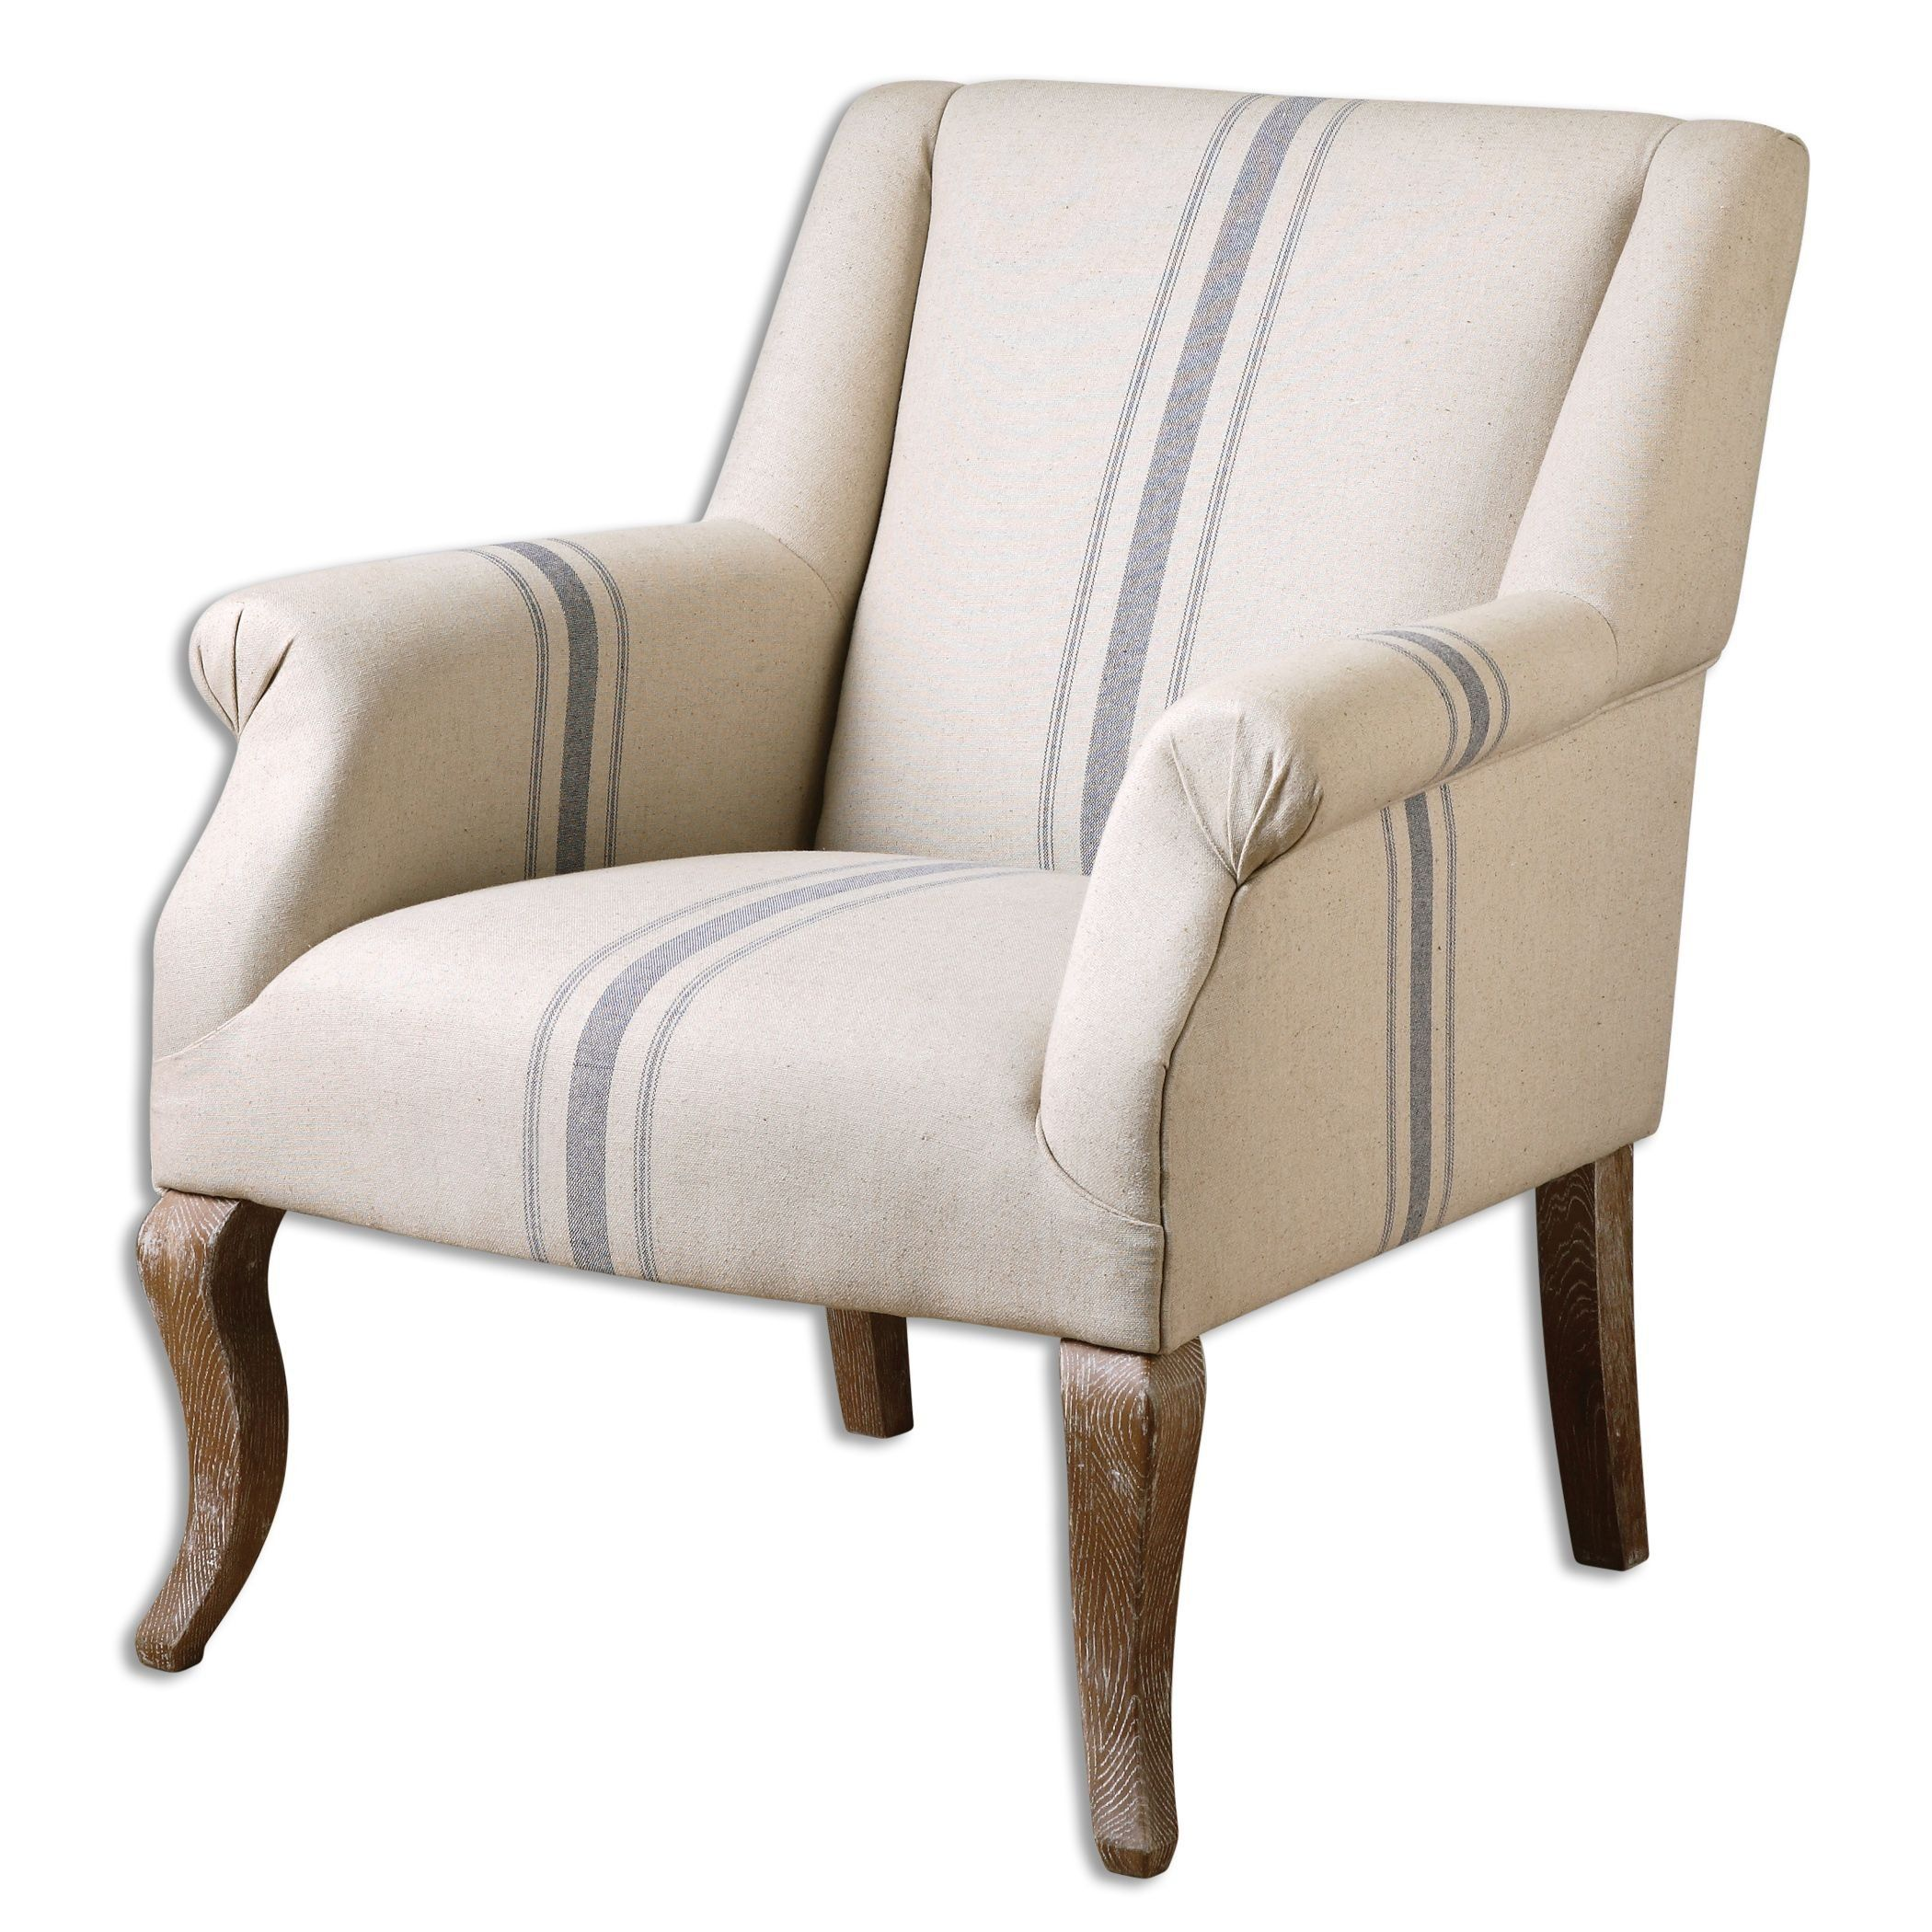 Amazon Com Farmhouse Arm Accent Chair Country Blue Cream Ticking Stripe Accent Chairs For Living Room Linen Armchair Armchair